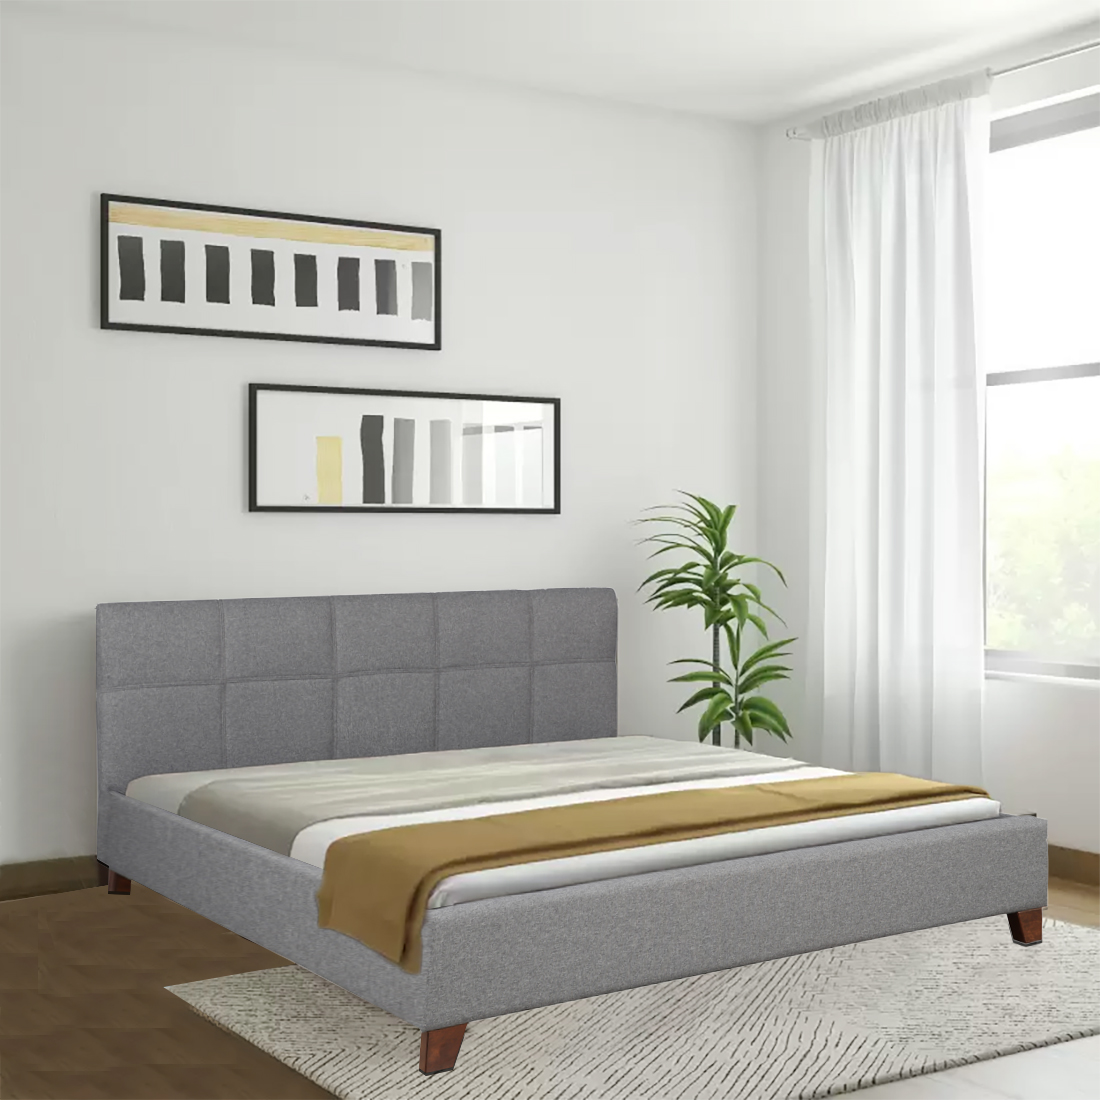 Allen Engineered Wood Fabric Upholstered Queen Size Bed in grey Colour by HomeTown